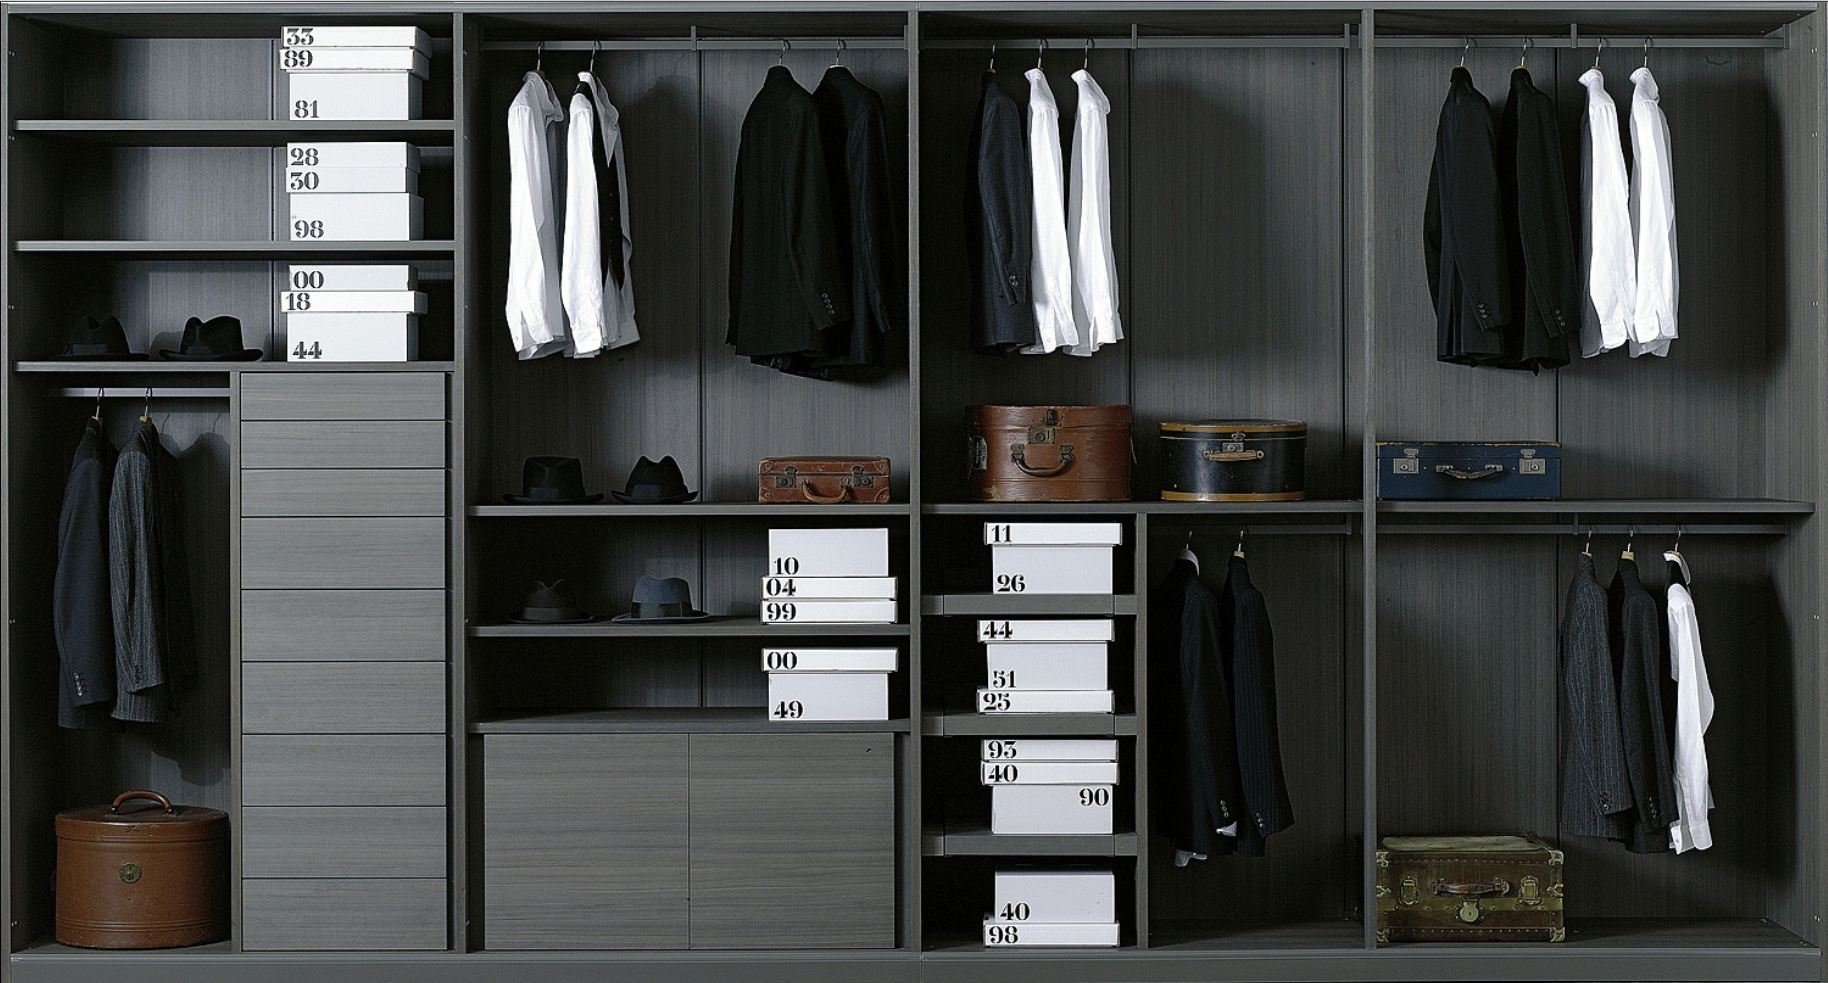 le mod le de dressing pr f r de ma femme. Black Bedroom Furniture Sets. Home Design Ideas